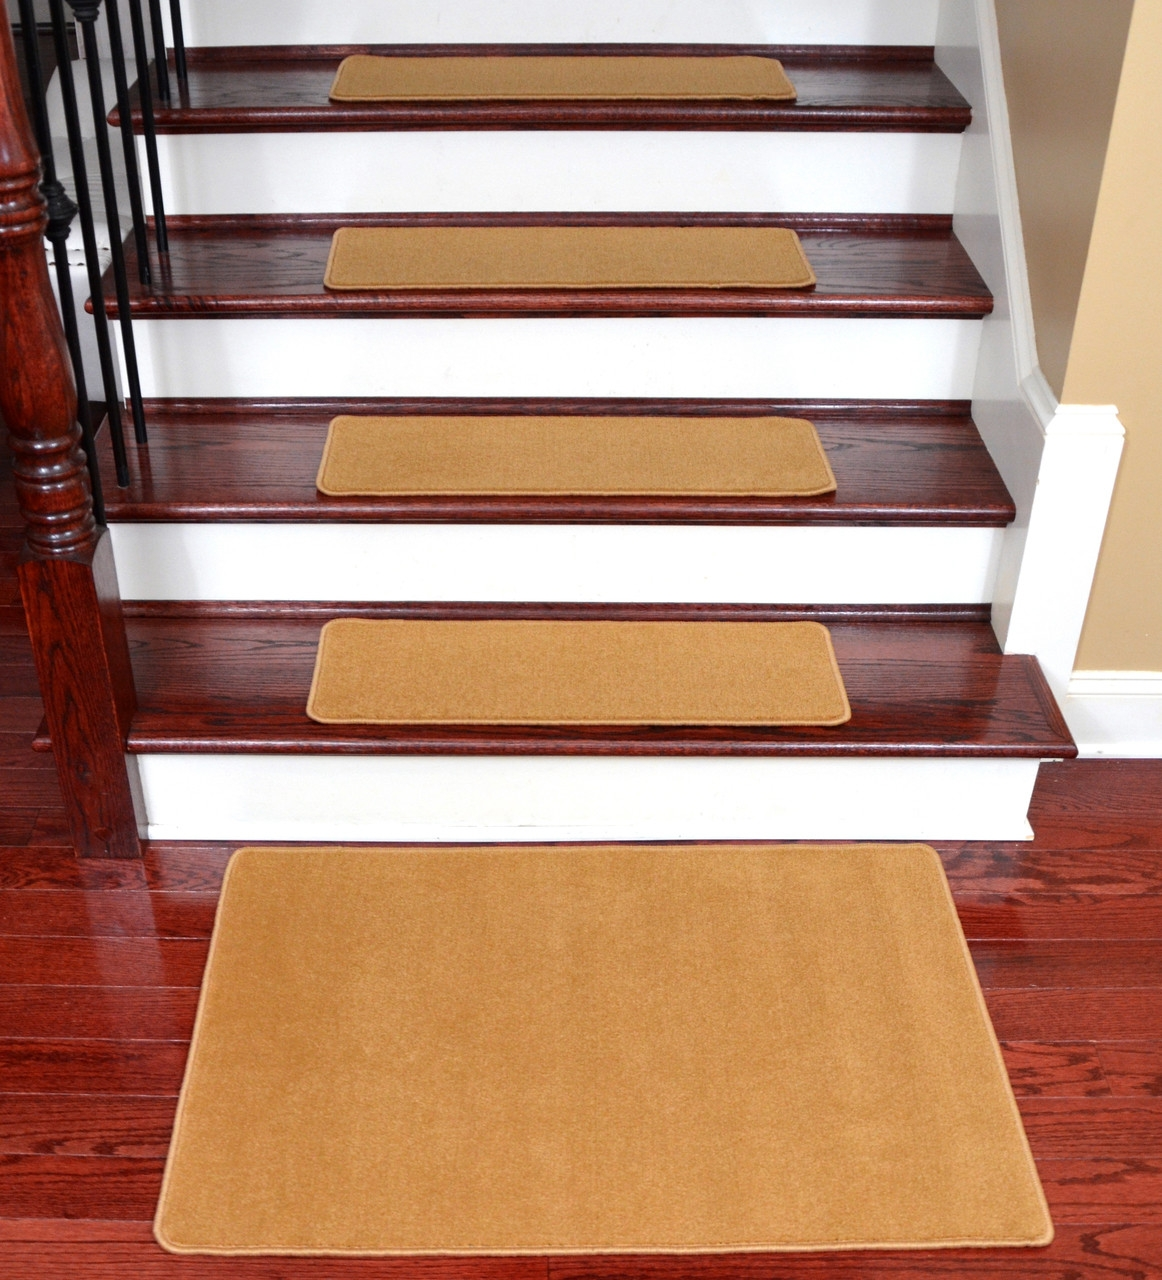 Dean Washable Non Slip Nylon Carpet Stair Treads Gold Coast   Washable Non Slip Stair Treads   Carpet Stair   Skid Resistant   Rubber Backing   Nova Morrocan Washable   Removable Washable